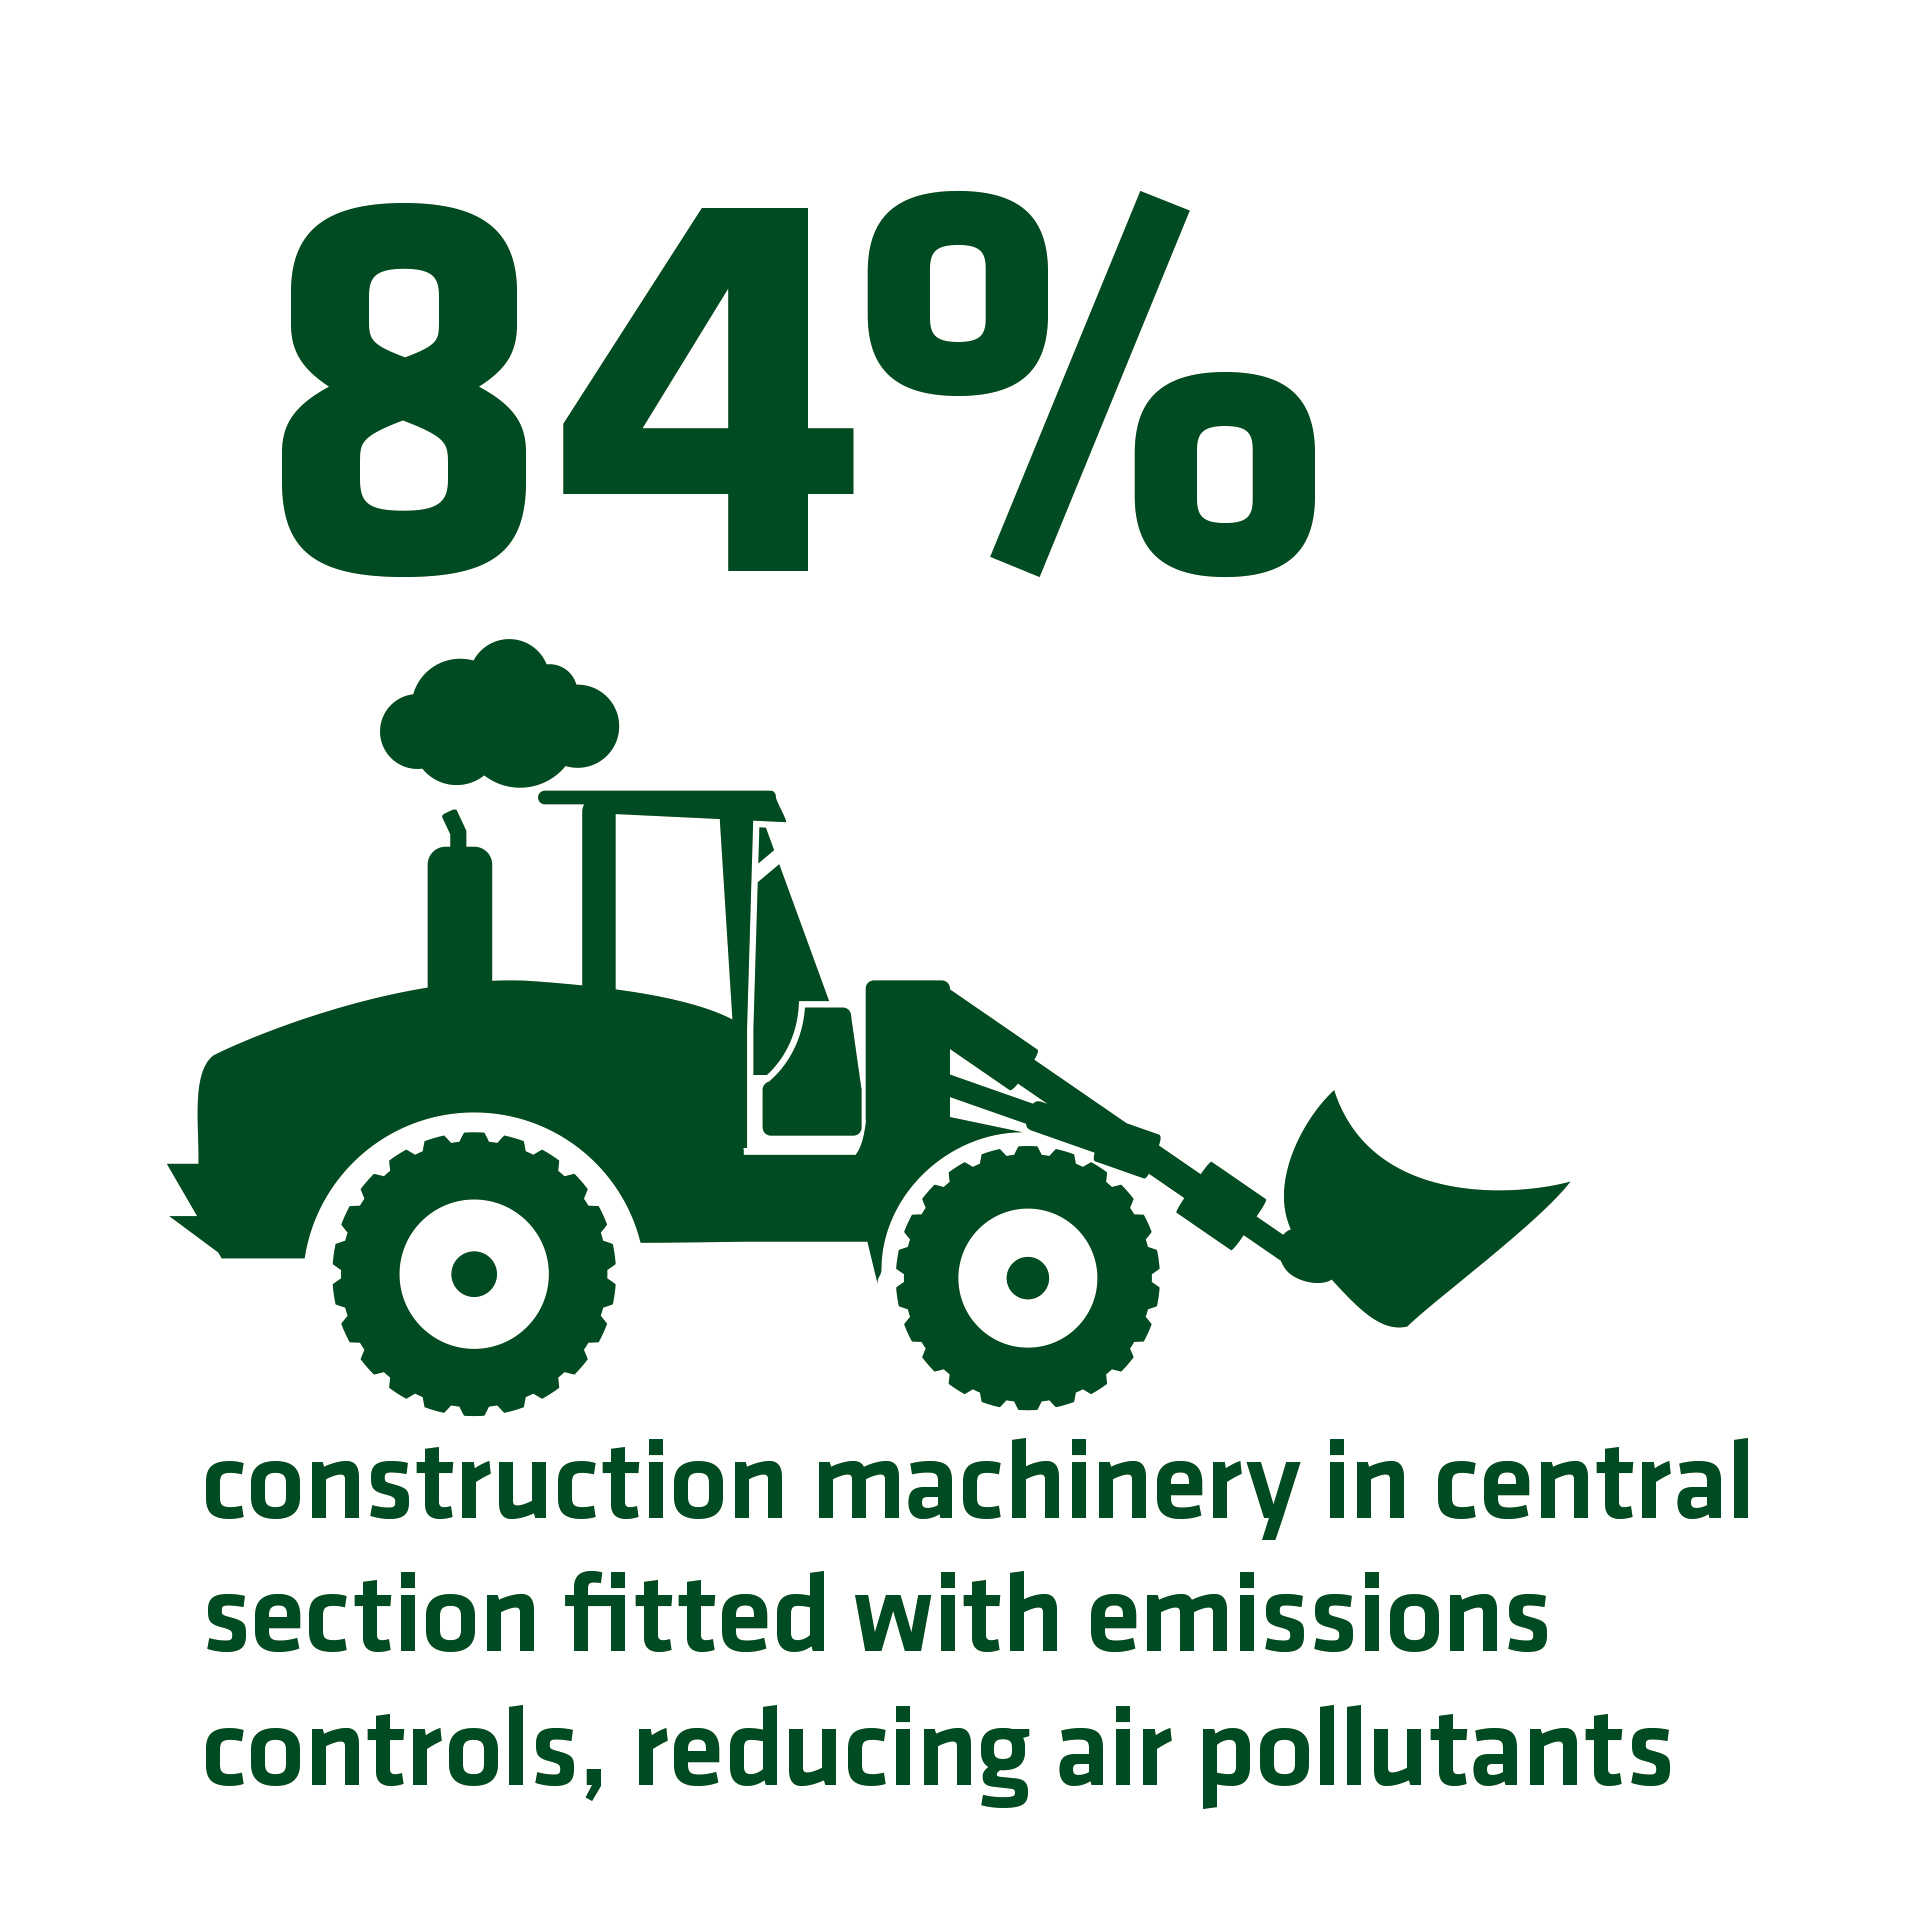 84 per cent construction machinery fitted with emission controls